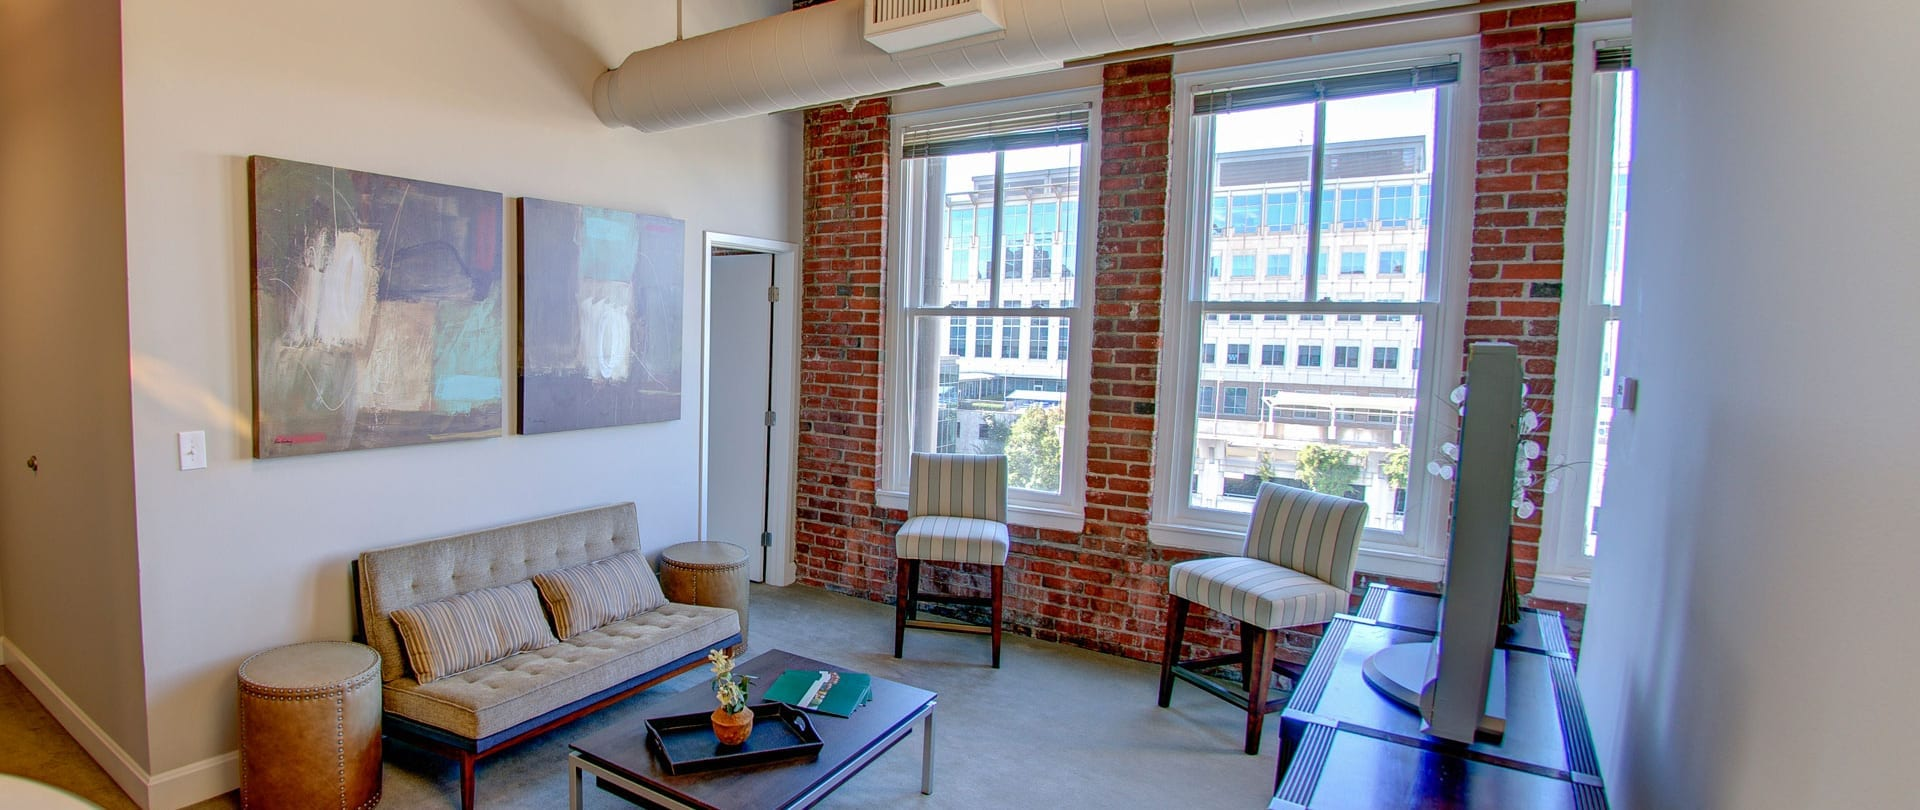 $300 Rental Special At Trolley Park Lofts